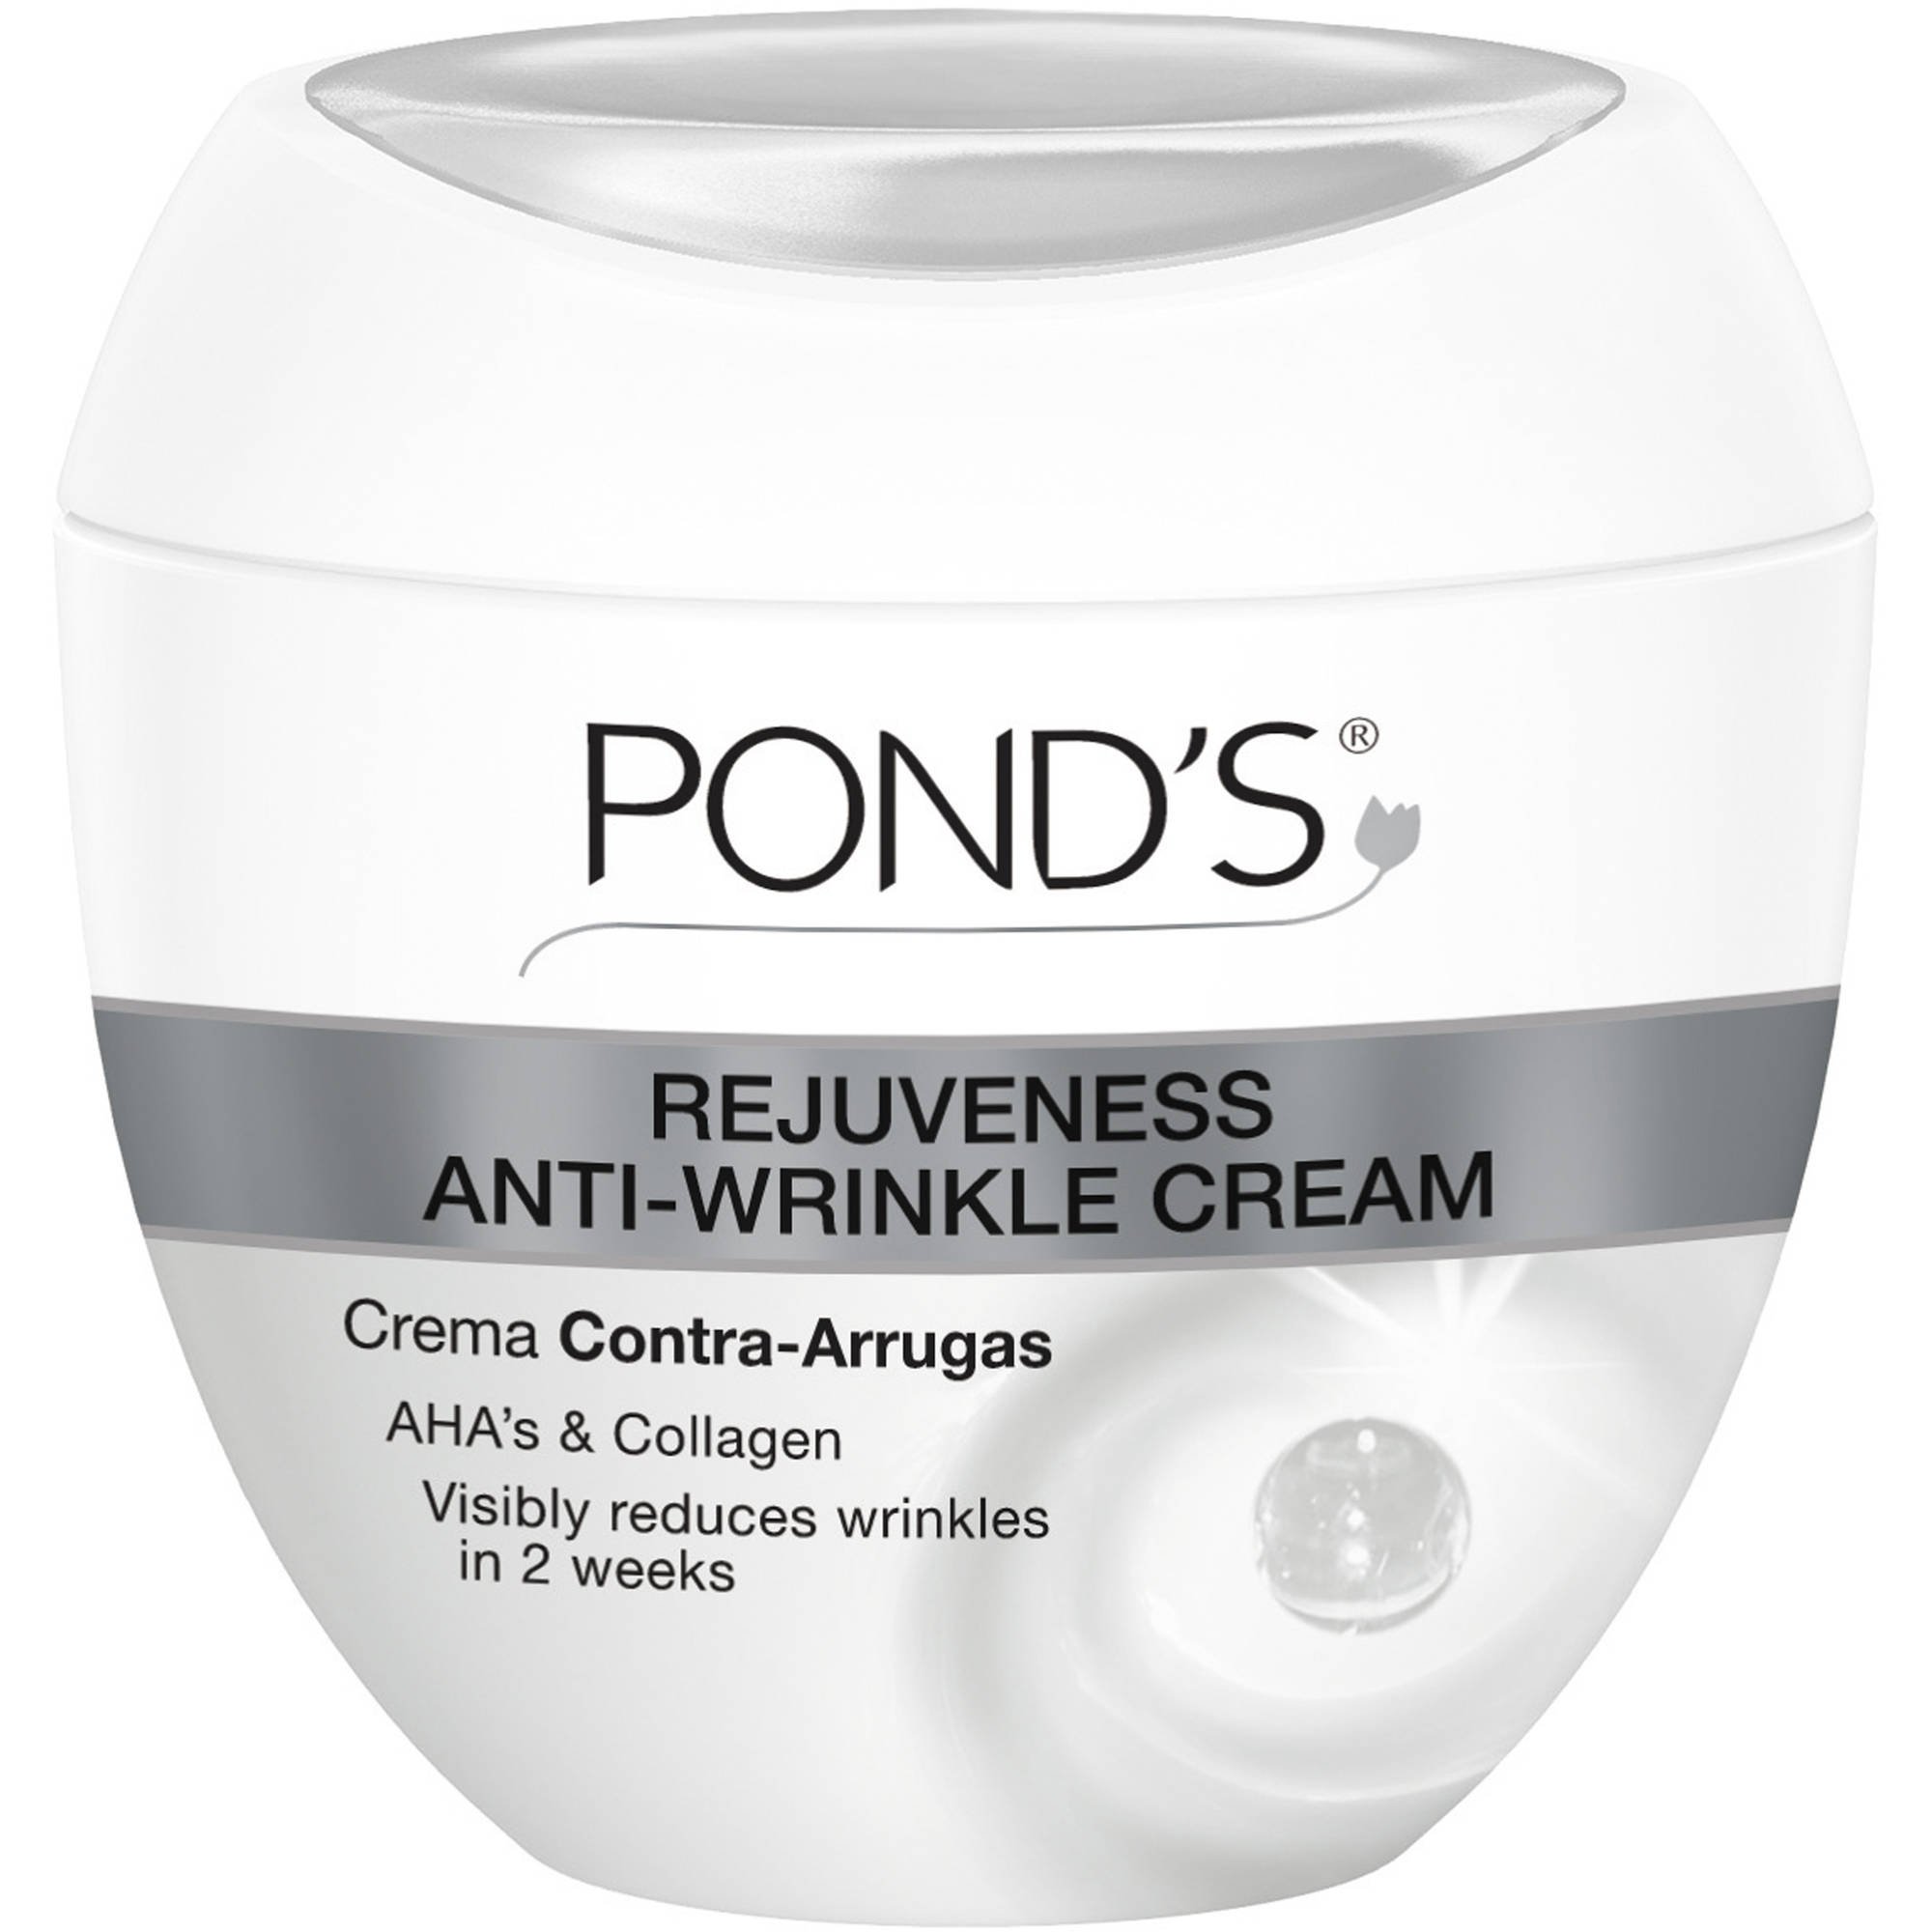 All About Anti-Wrinkle Creams recommend